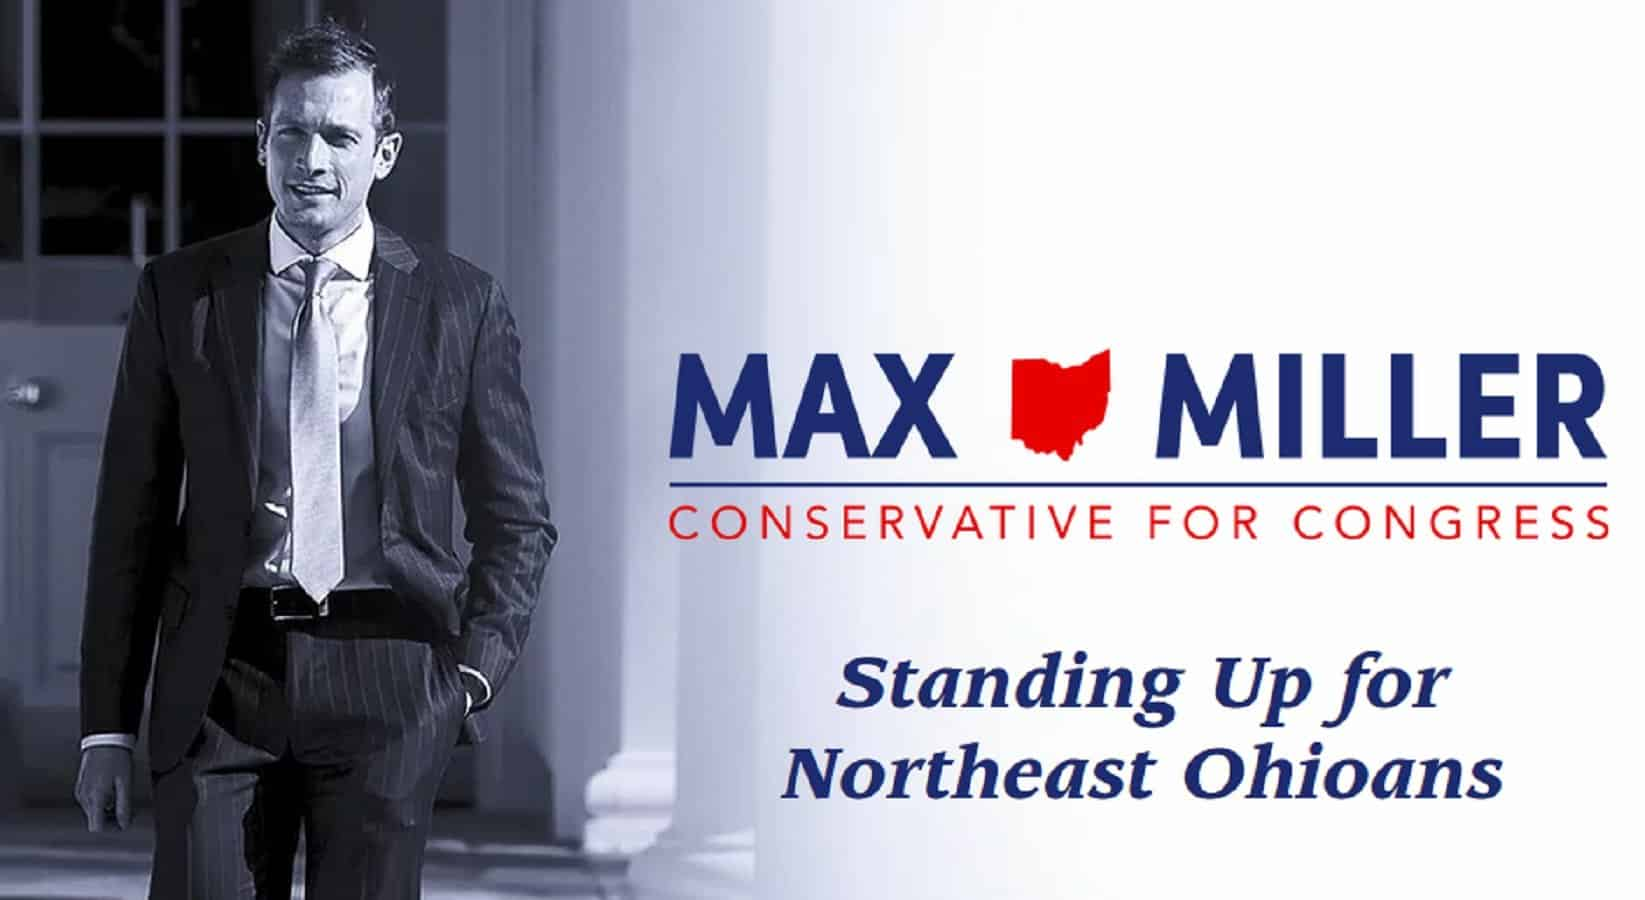 BOOM! President Trump Endorses Max Miller Over #NeverTrump Turncoat Anthony Gonzalez Who Voted for Impeachment 1